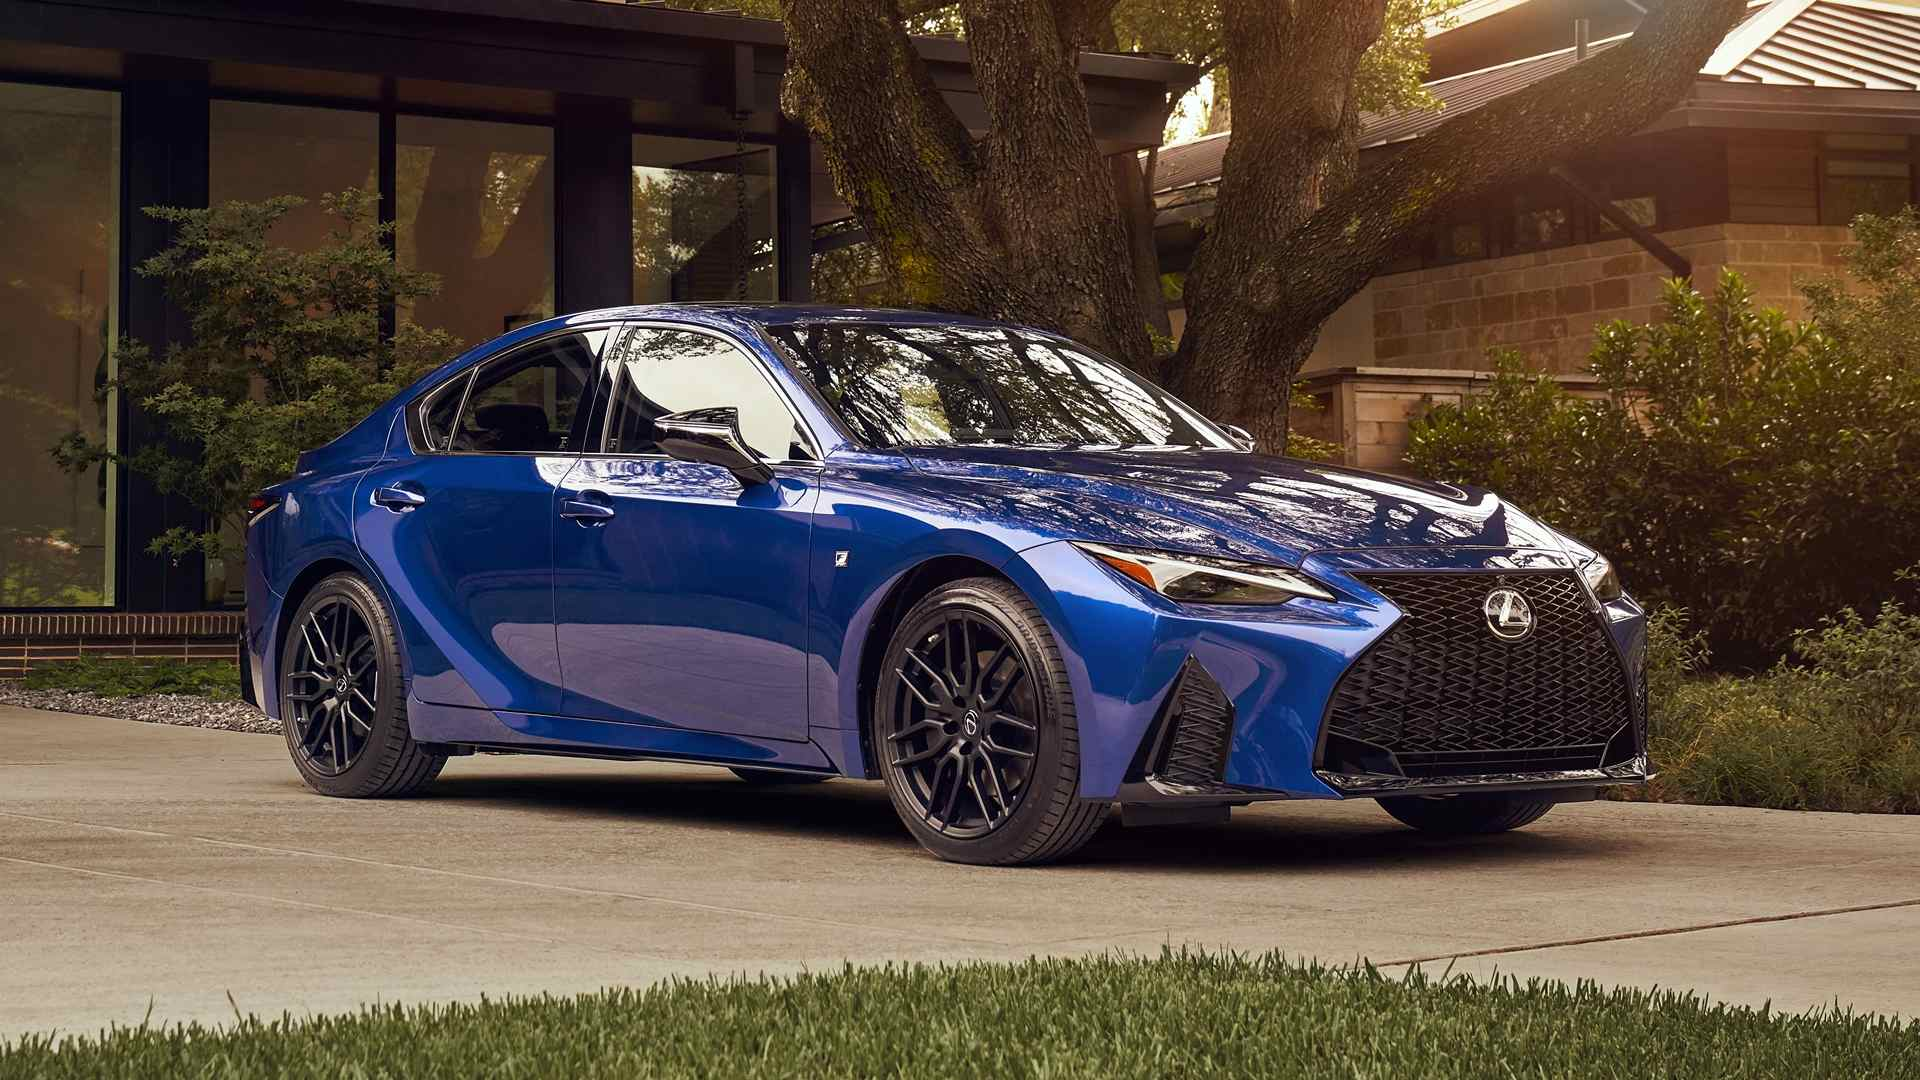 Blue Lexus IS 2021 side